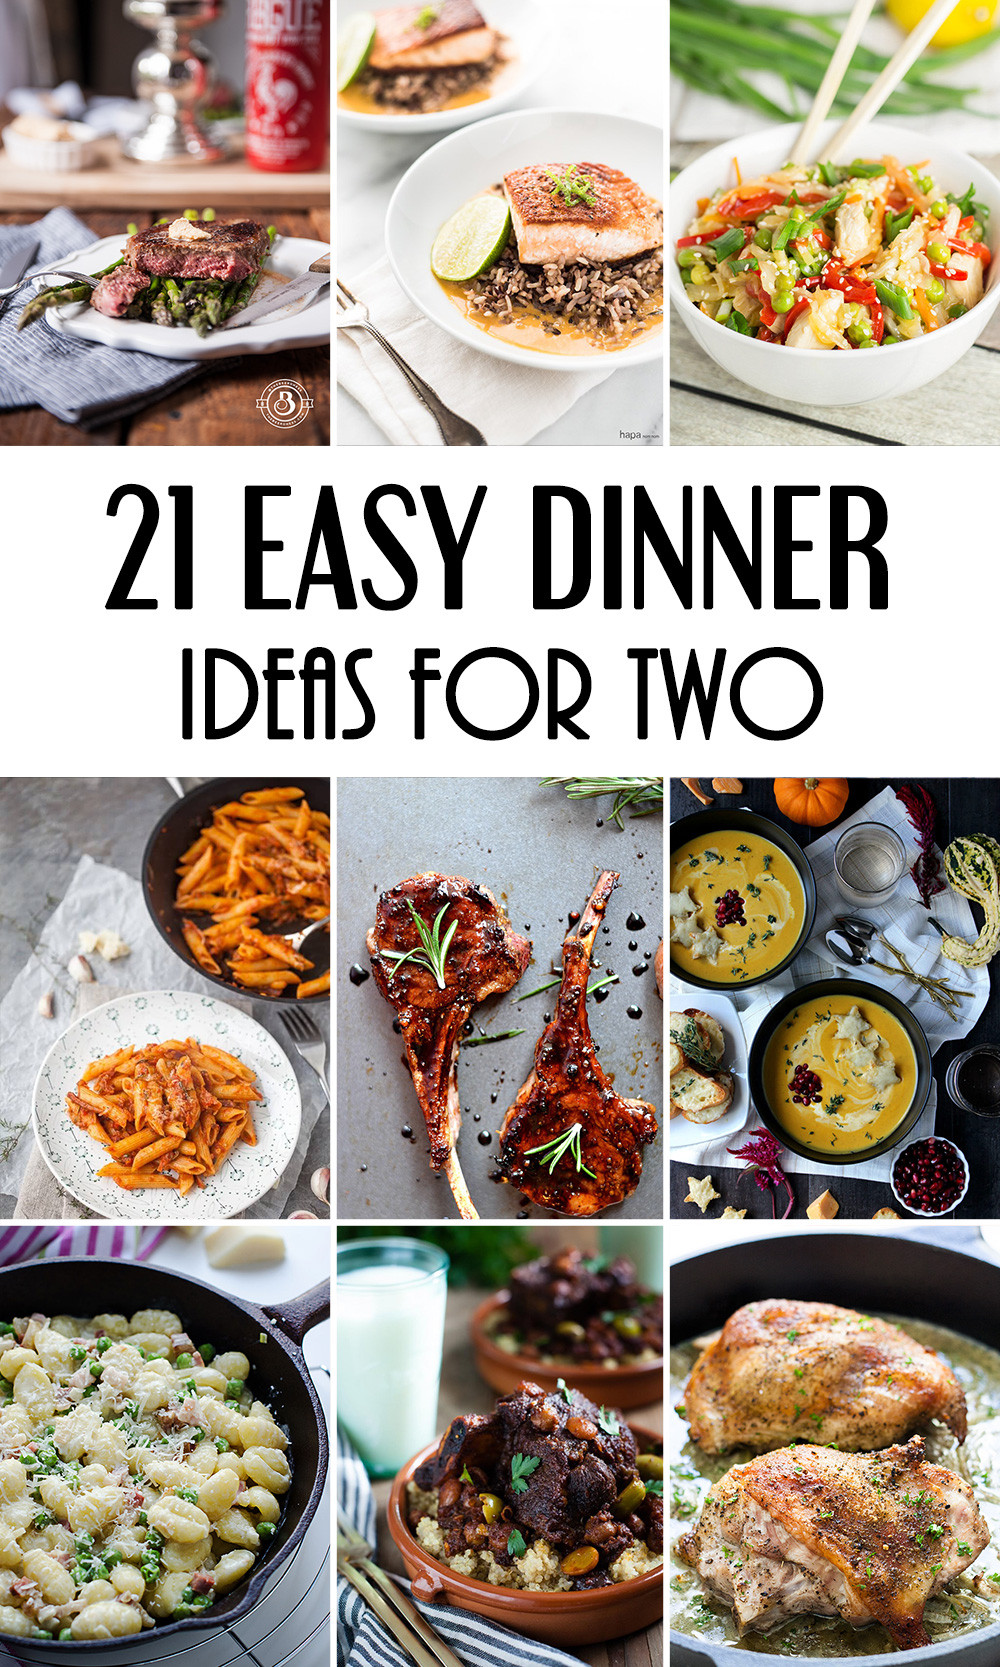 Easy Dinner Recipe  21 Easy Dinner Ideas For Two That Will Impress Your Loved e